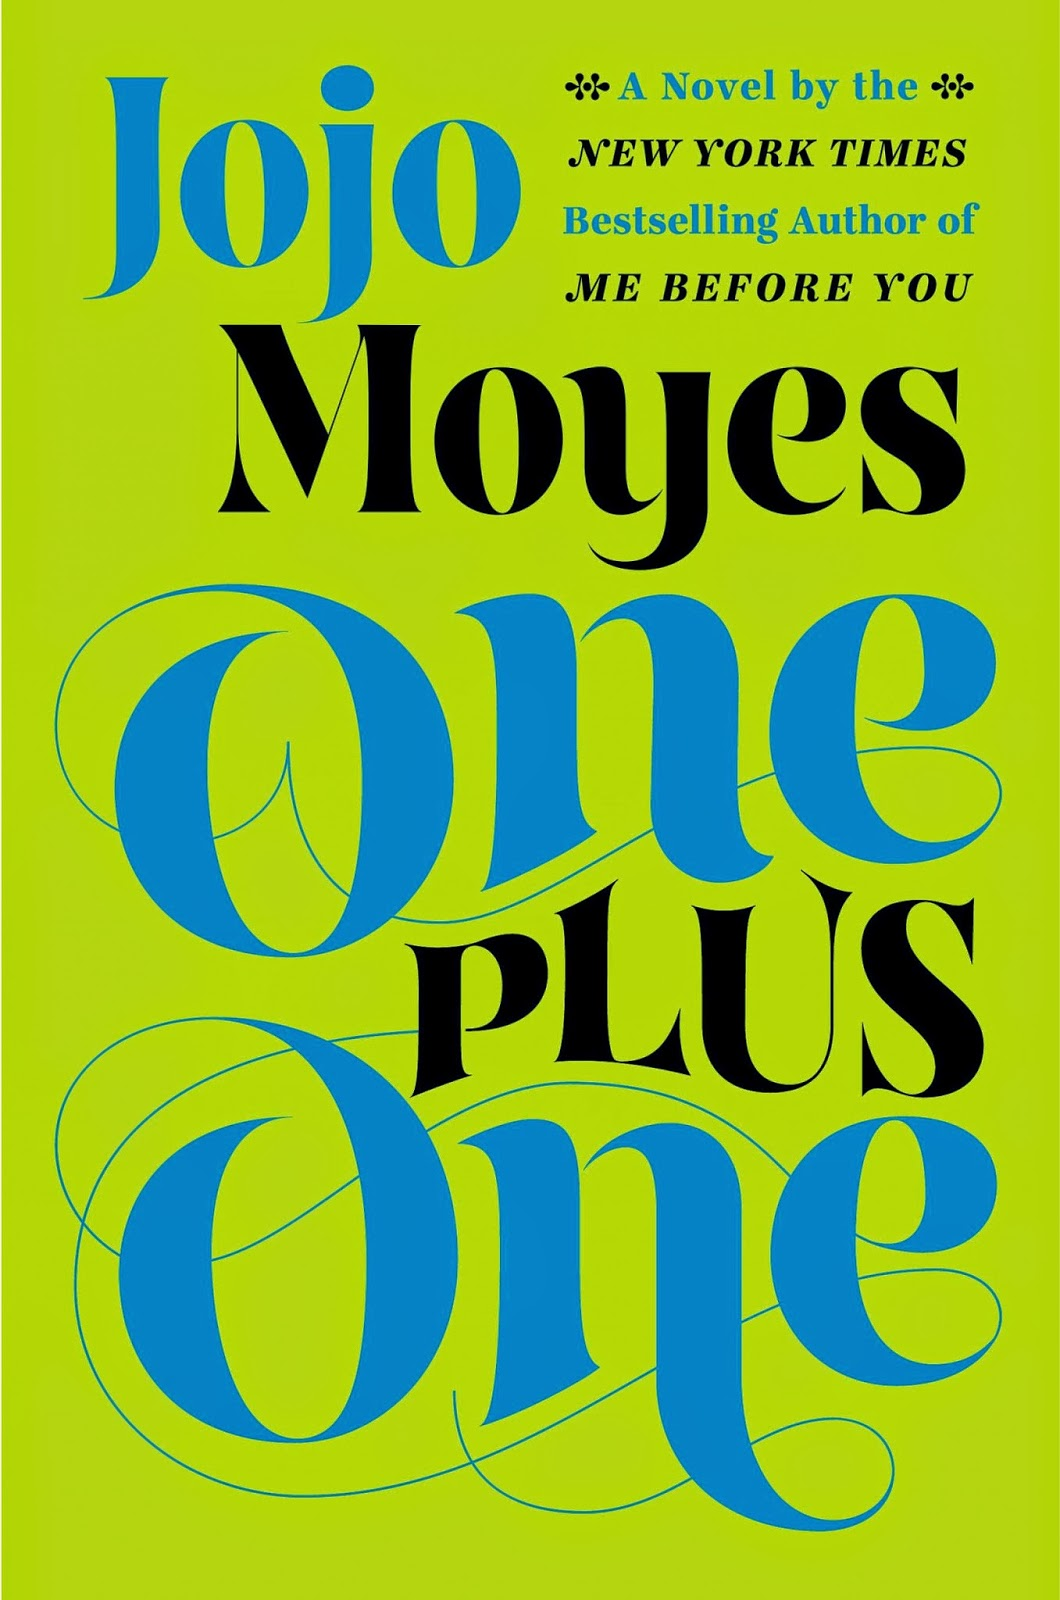 http://literatelystylish.blogspot.com/2014/08/book-review-one-one.html